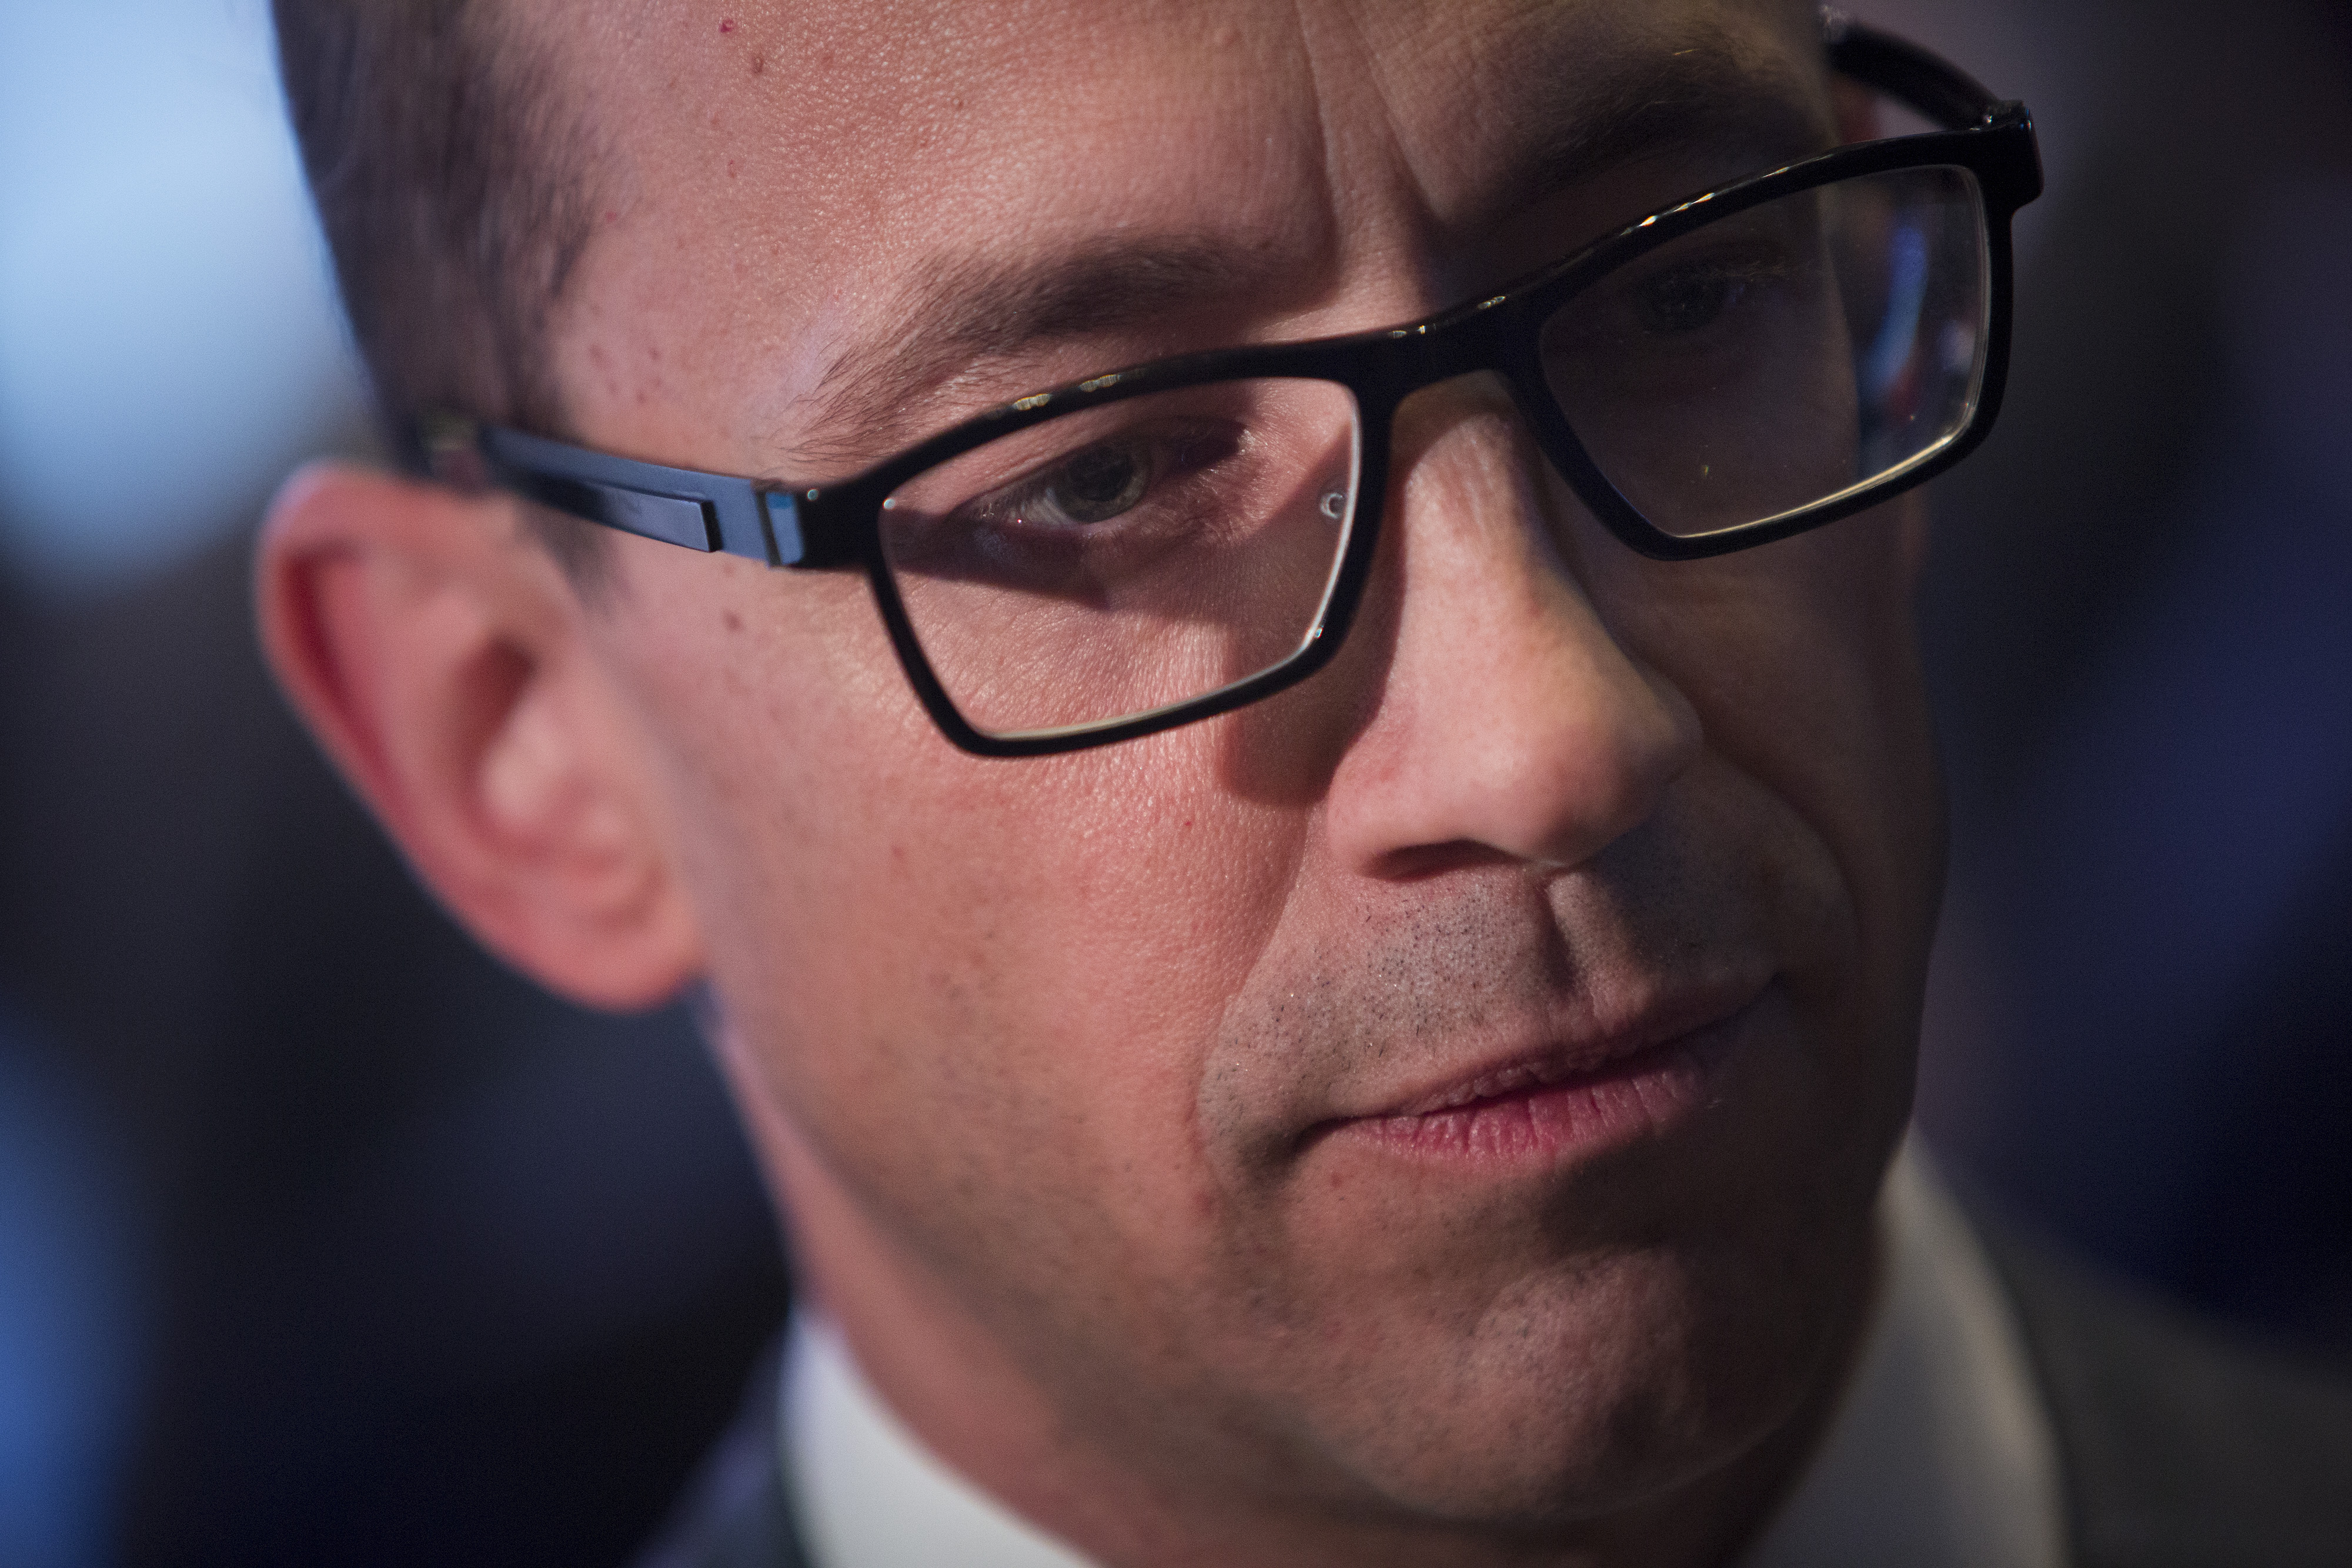 Richard  Dick  Costolo, chief executive officer of Twitter Inc., speaks on the floor of the New York Stock Exchange in New York, U.S., on Thursday, Nov. 7, 2013.